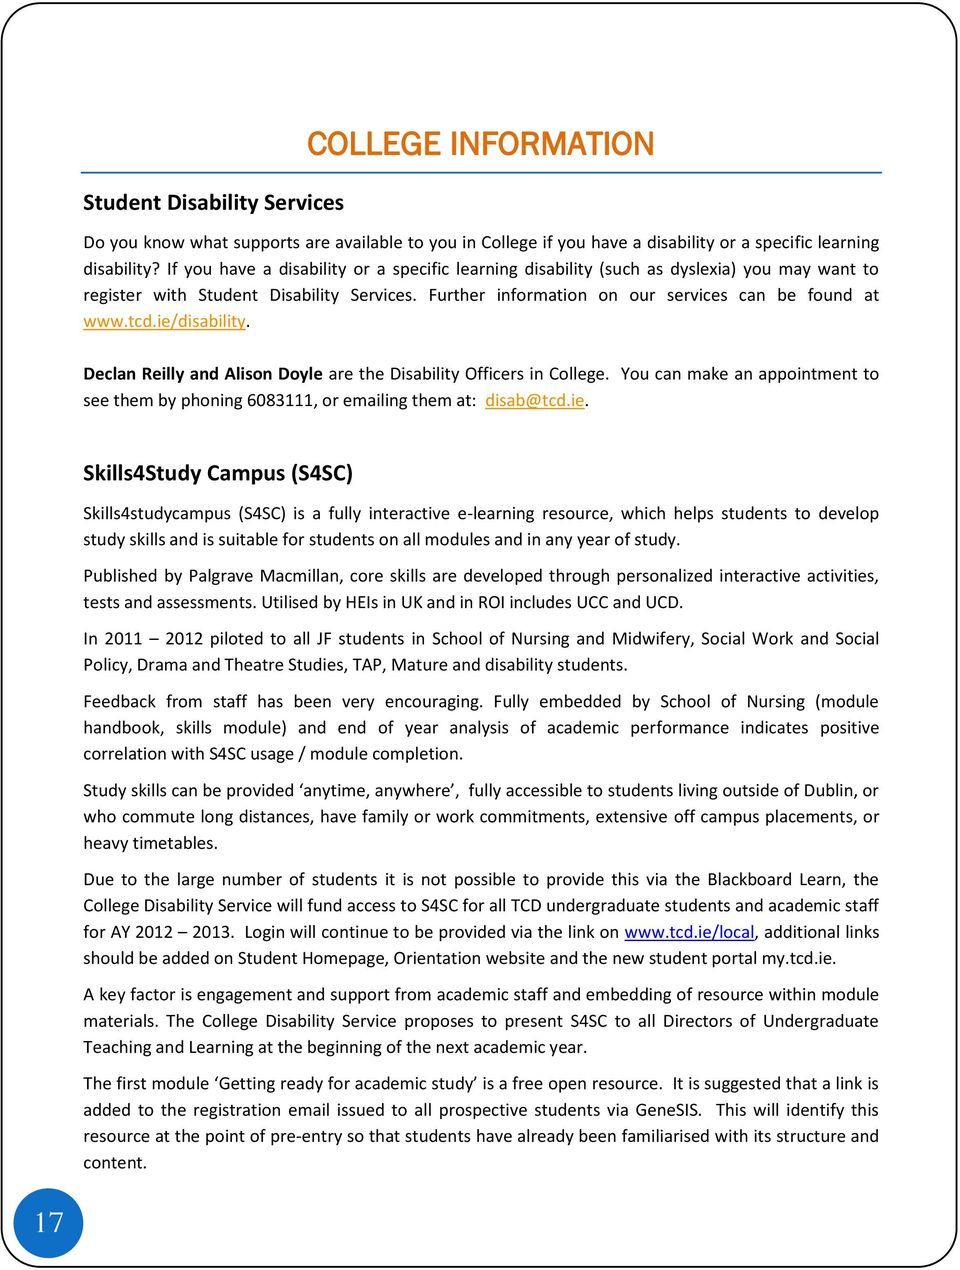 ie/disability. Declan Reilly and Alison Doyle are the Disability Officers in College. You can make an appointment to see them by phoning 6083111, or emailing them at: disab@tcd.ie. Skills4Study